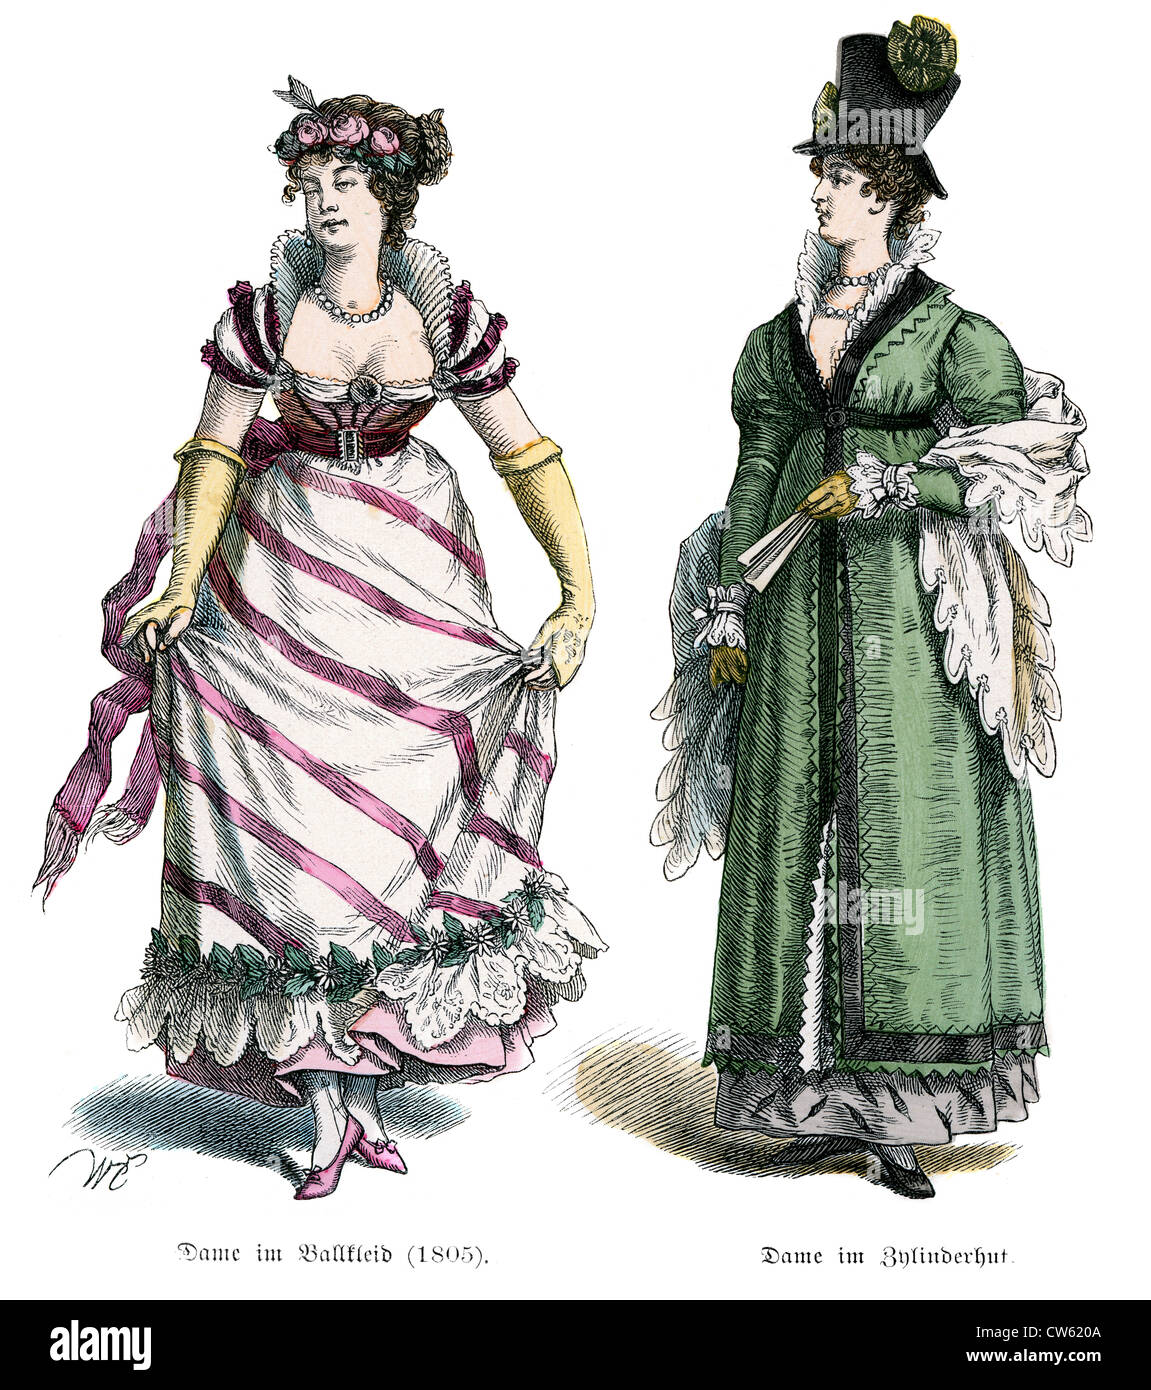 Young women in early 19th Century Costume - Stock Image